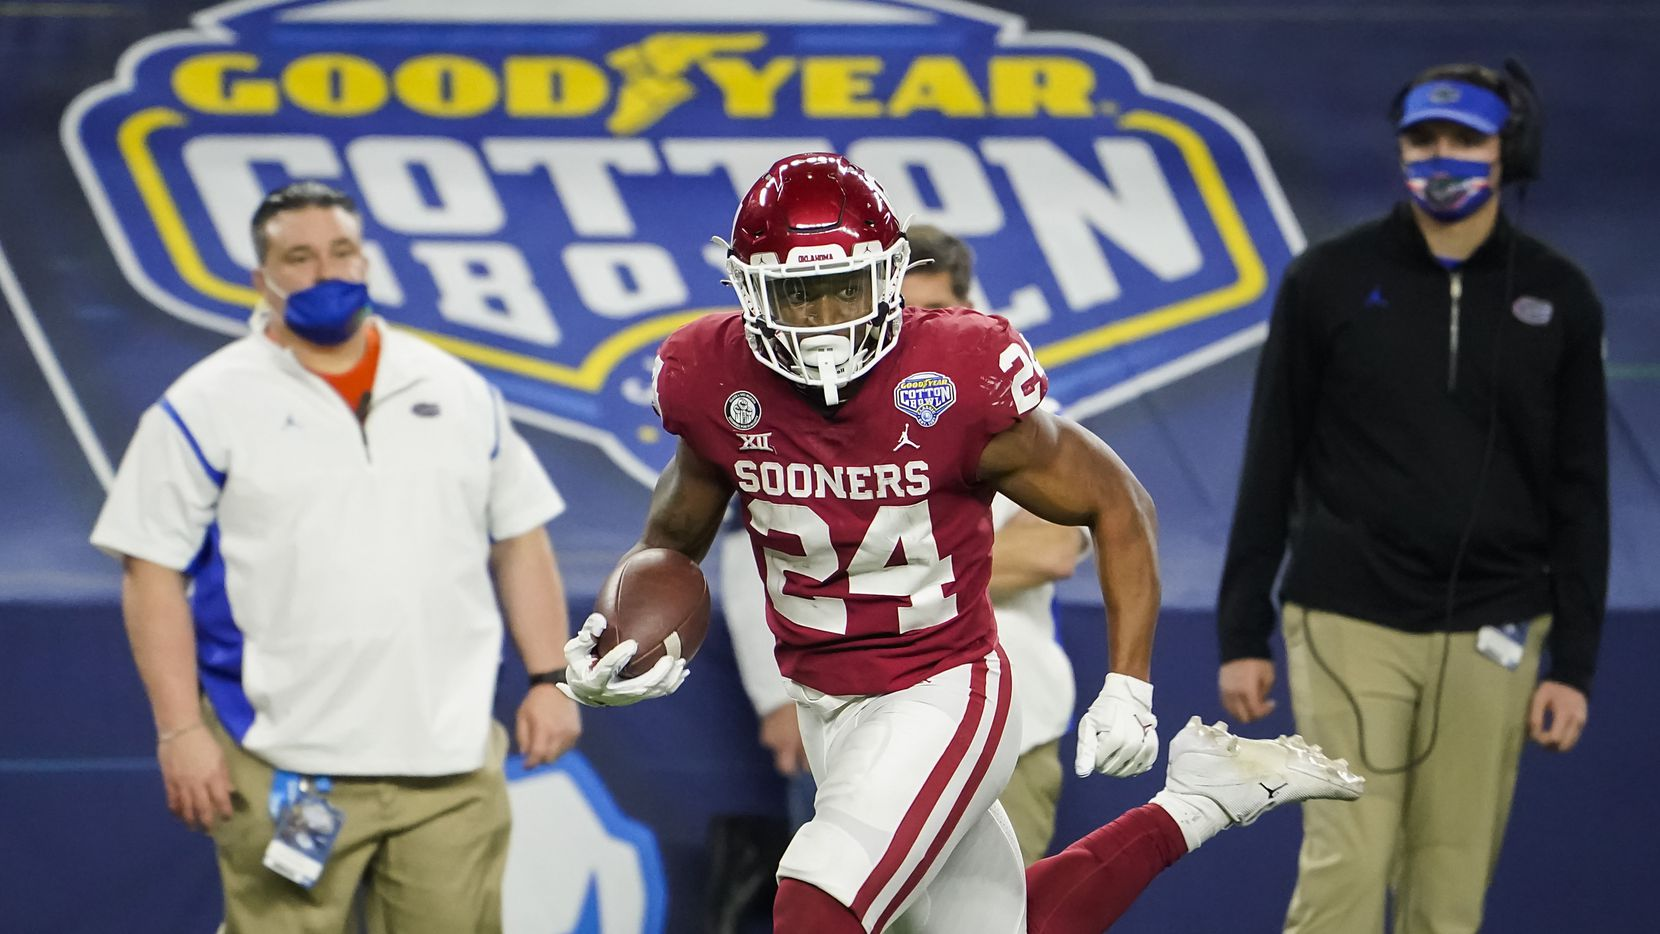 Oklahoma running back Marcus Major (24) races toward the end zone on a 42-yard touchdown run during the second half of the Cotton Bowl Classic against Florida at AT&T Stadium on Wednesday, Dec. 30, 2020, in Arlington.